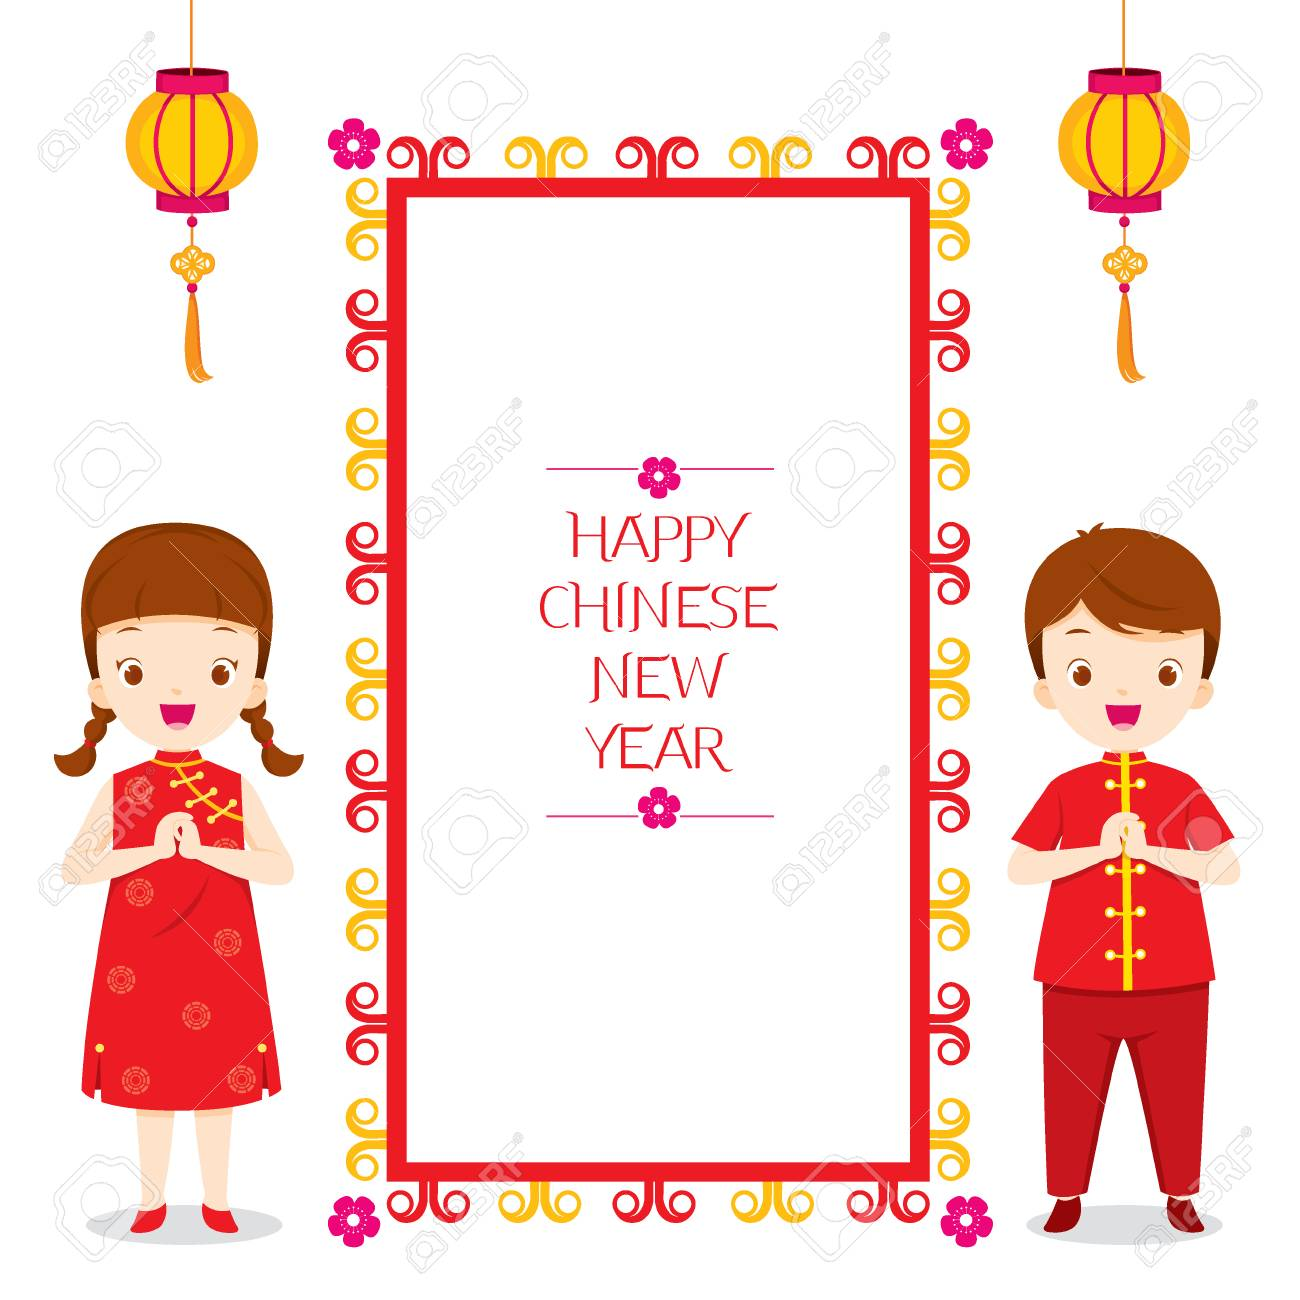 Happy Chinese New Year Frame With Children, Traditional Celebration,...